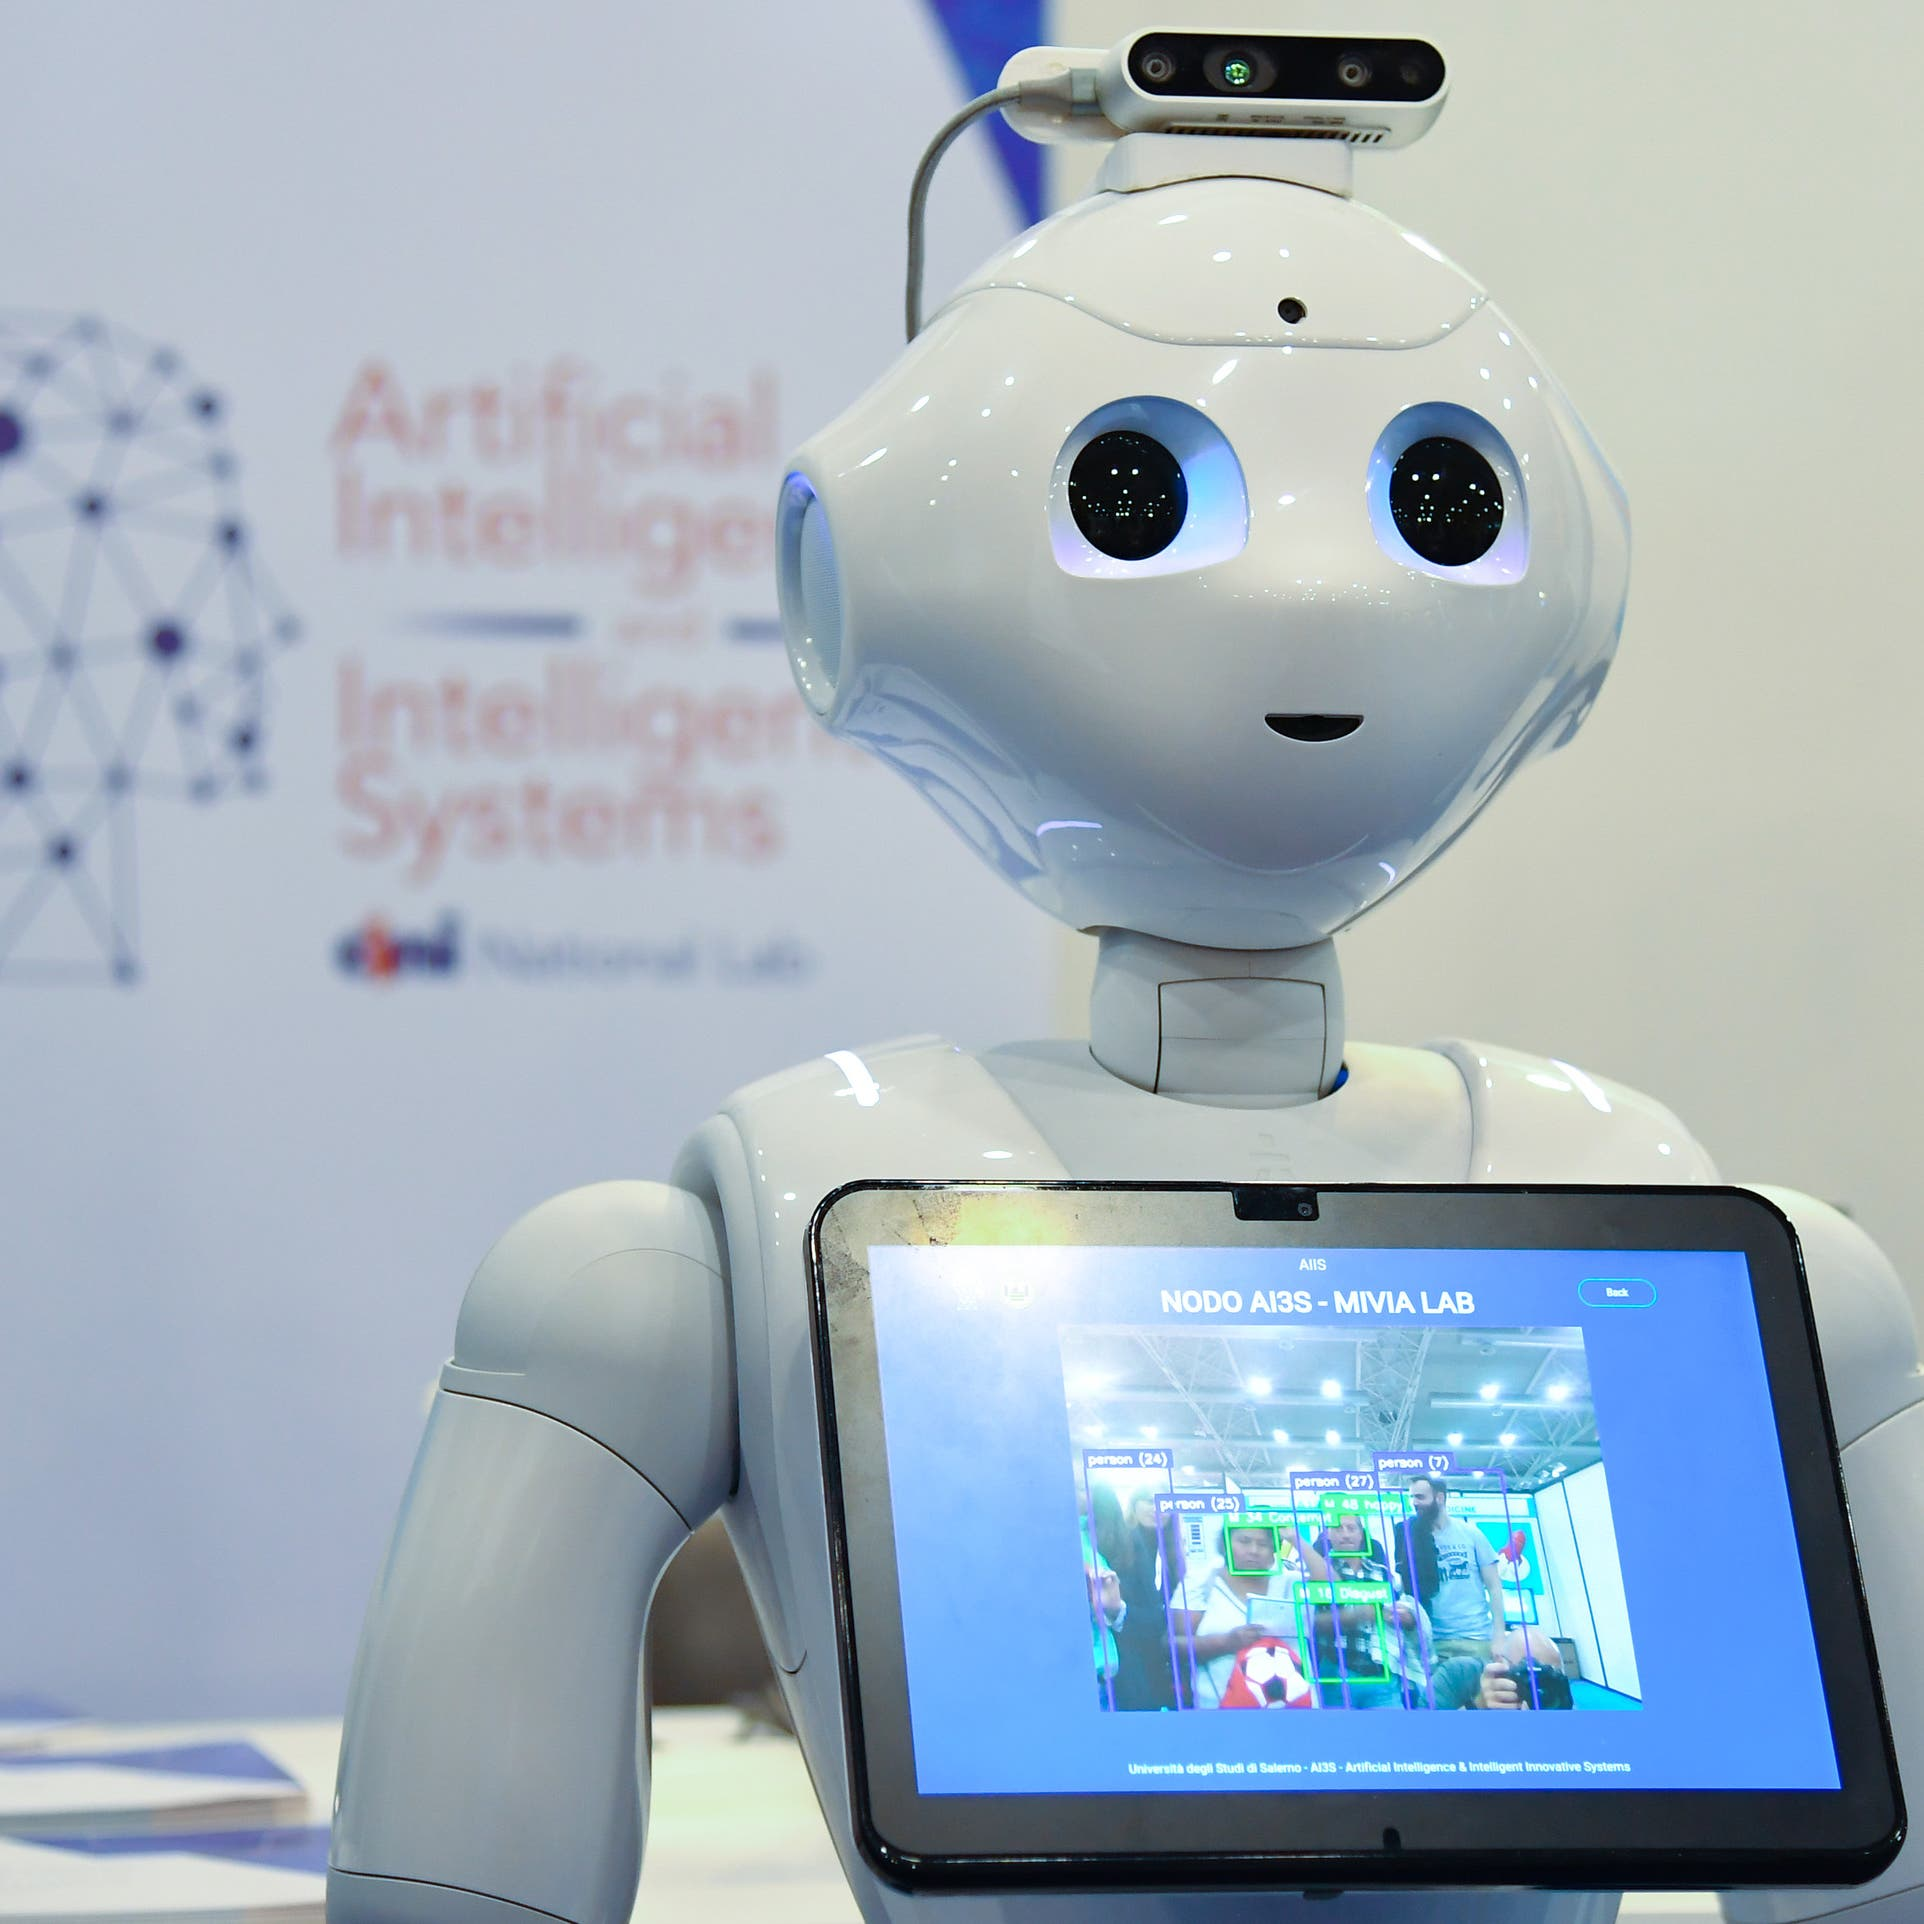 Why artificial intelligence will not abolish work